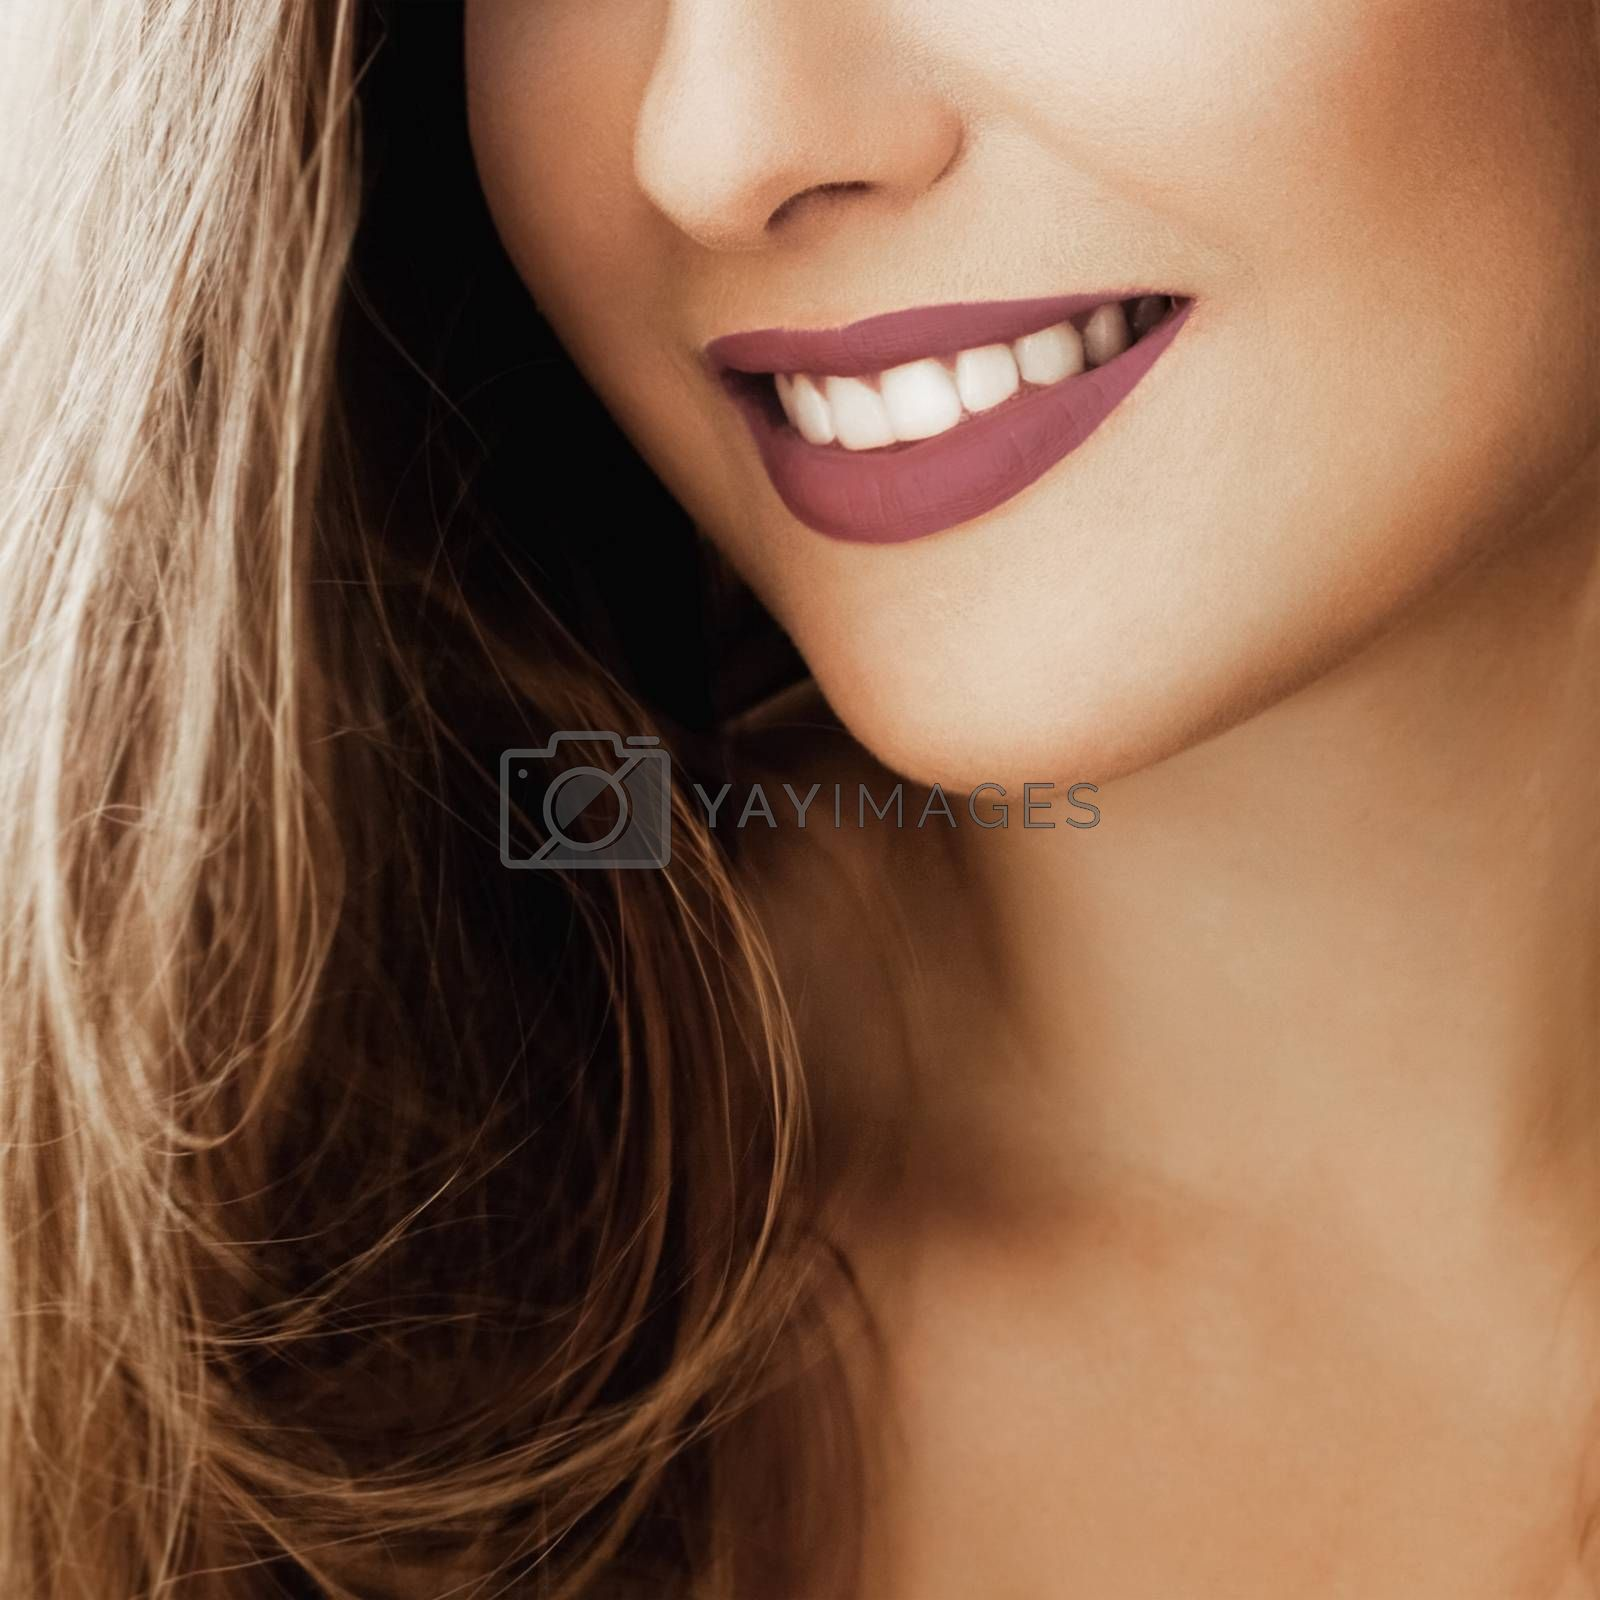 Cheerful healthy female smile with perfect natural white teeth, beauty face closeup of smiling young woman, bright lipstick makeup and clean skin for dental and healthcare brands